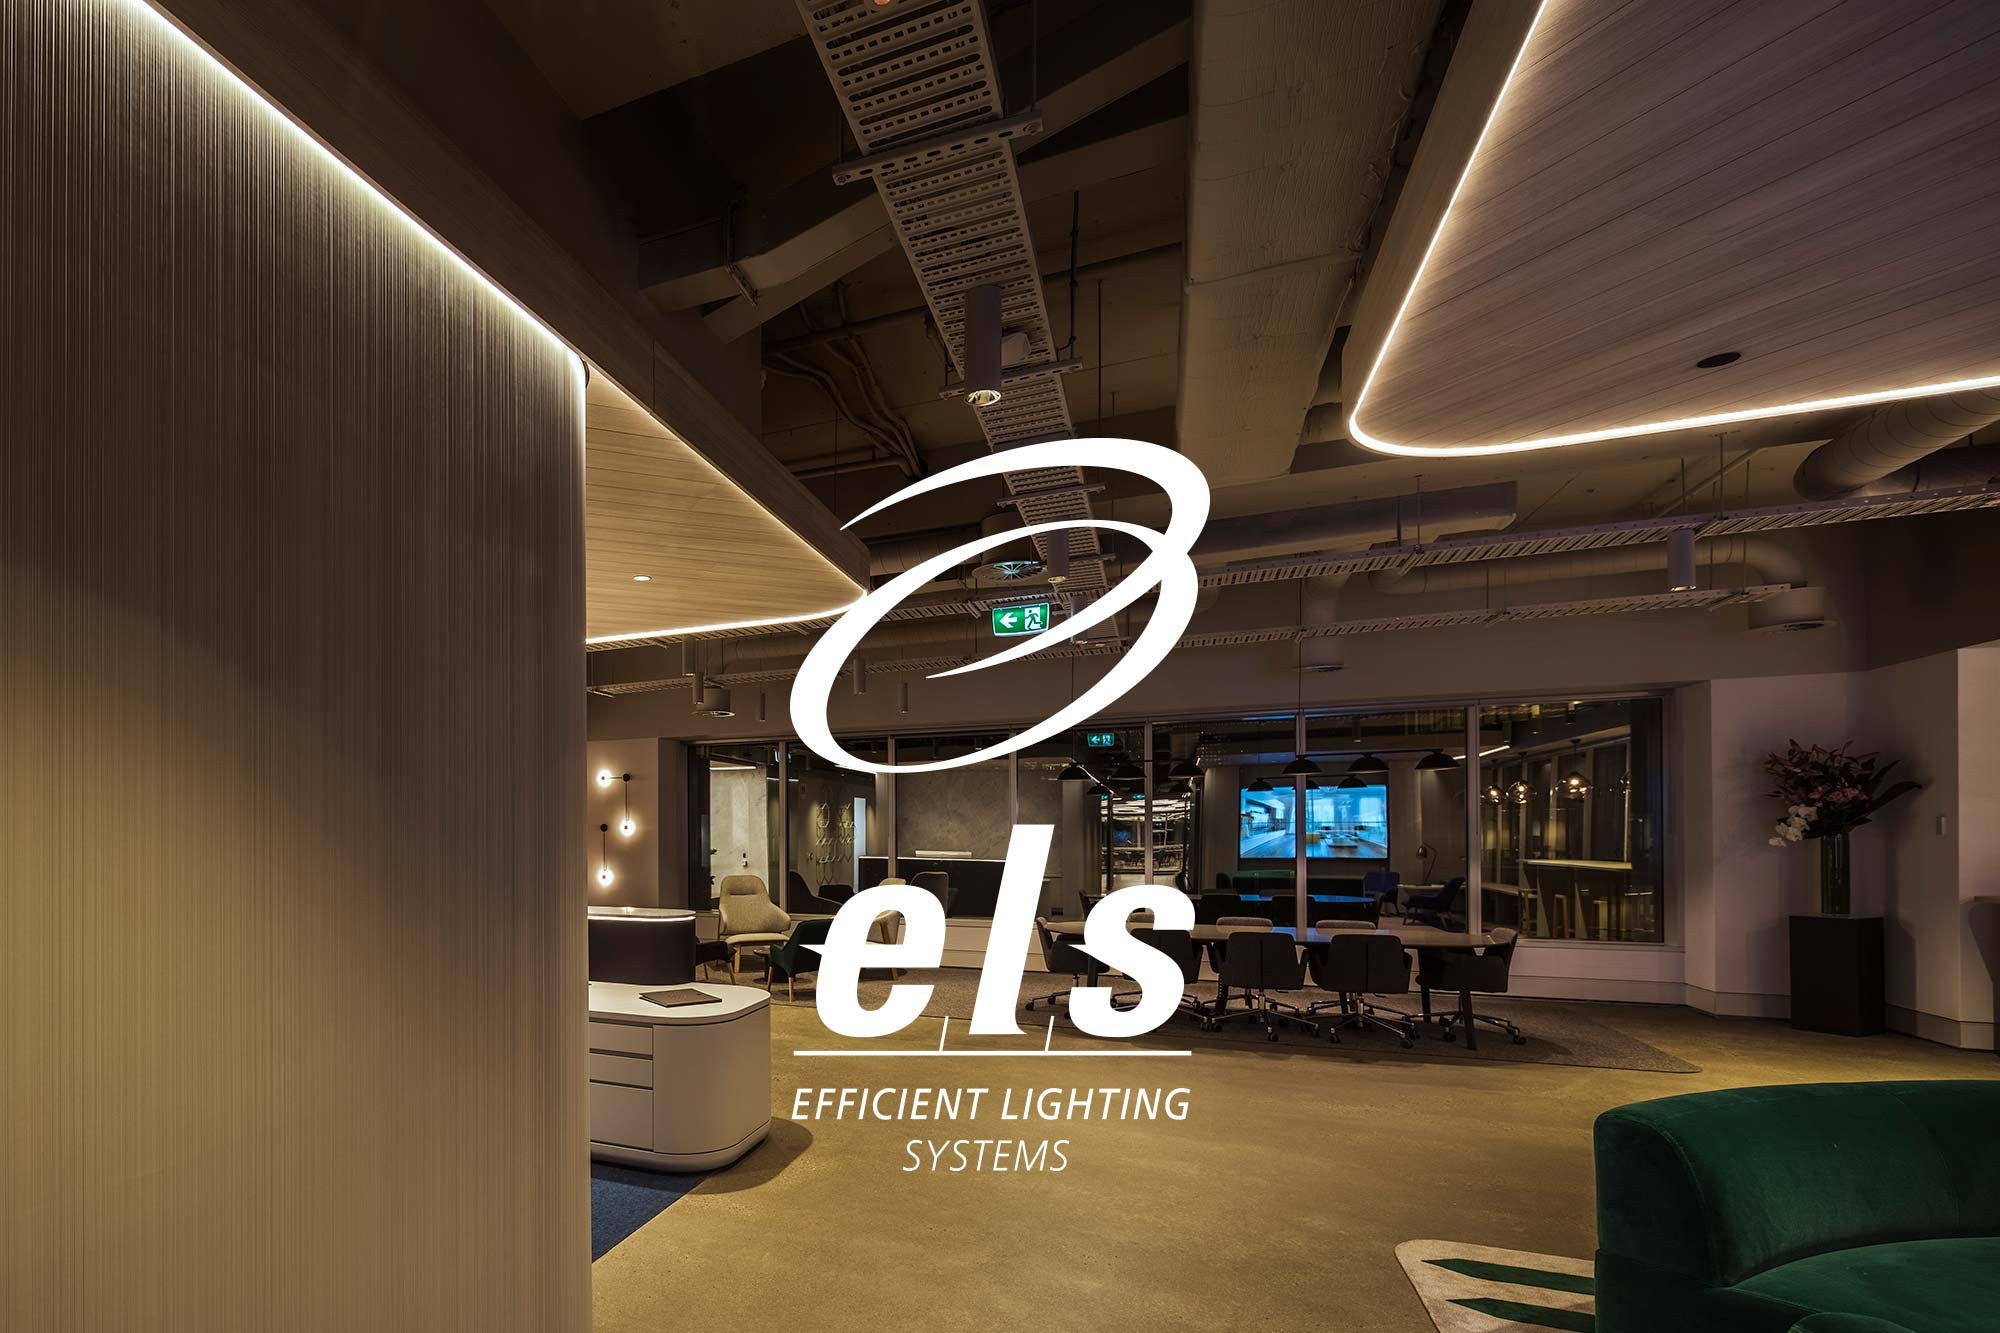 Els smart lighting 2018 01